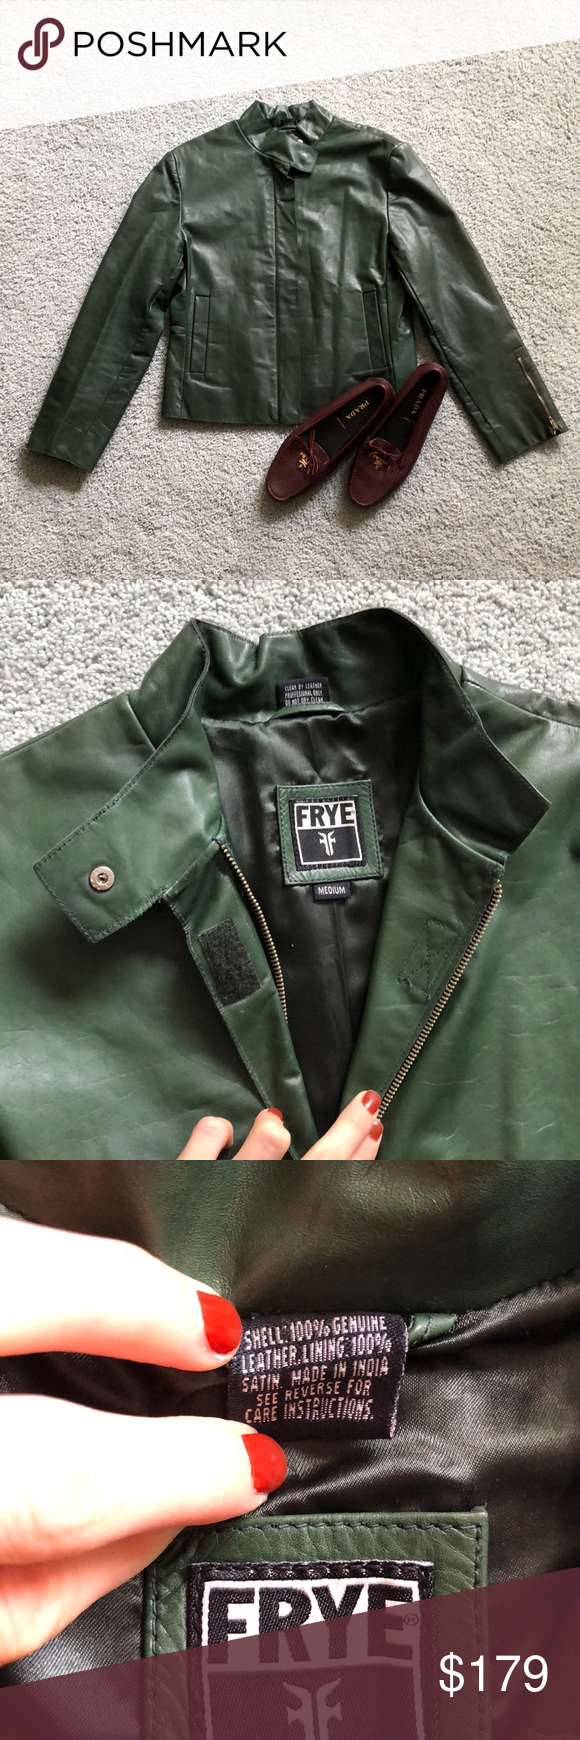 FRYE green leather motorcycle jacket NEW szM (With images